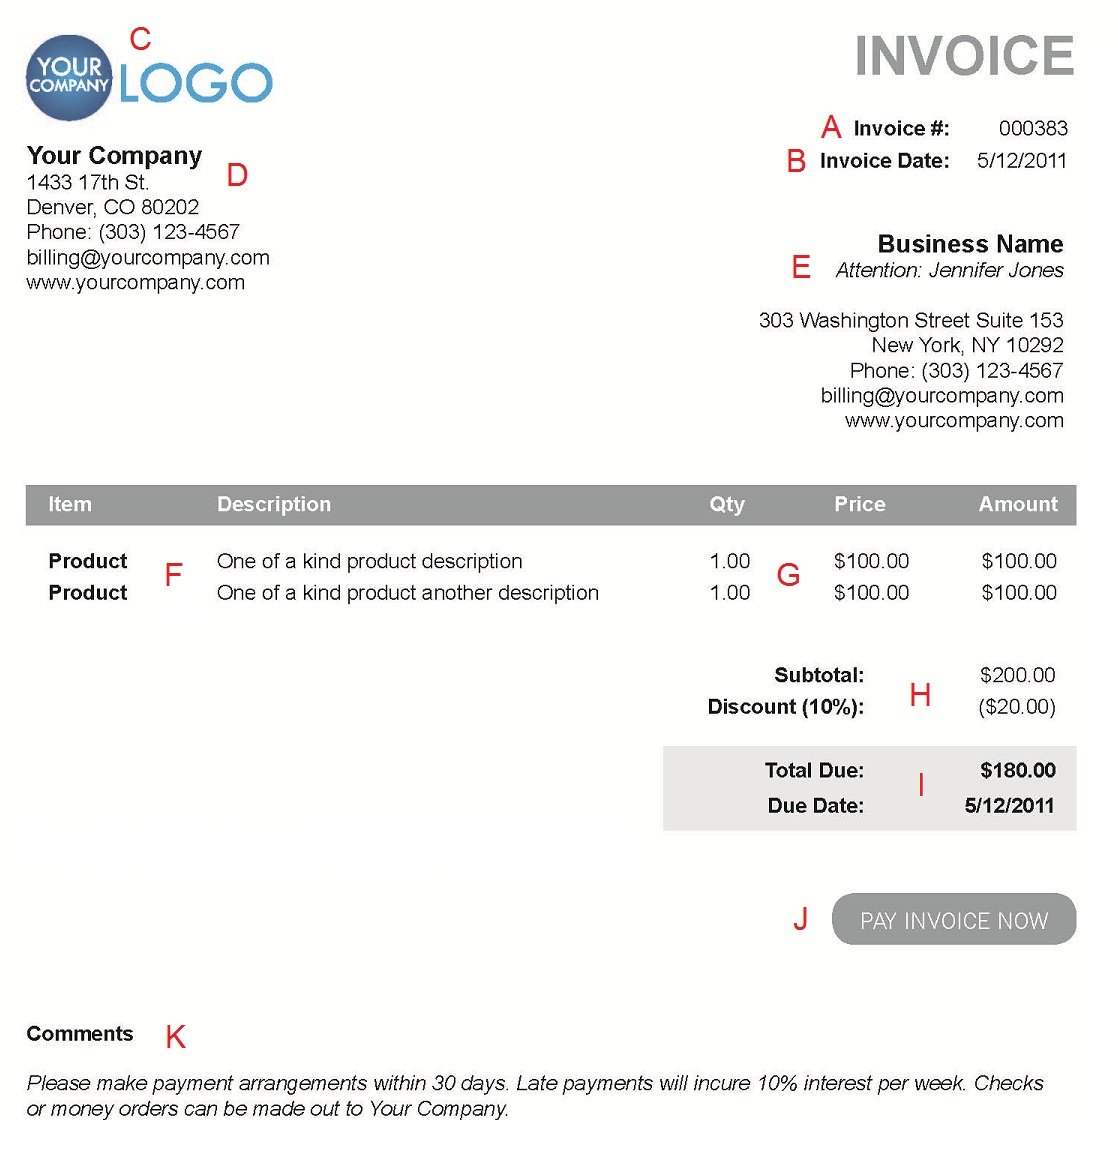 Coolmathgamesus  Outstanding The  Different Sections Of An Electronic Payment Invoice With Fair A  With Awesome Invoice Delivery Also Excel Invoice Template Free Download In Addition Blank Invoice Uk And Proforma Invoice Software As Well As Commercail Invoice Additionally Computer Invoice Template From Paysimplecom With Coolmathgamesus  Fair The  Different Sections Of An Electronic Payment Invoice With Awesome A  And Outstanding Invoice Delivery Also Excel Invoice Template Free Download In Addition Blank Invoice Uk From Paysimplecom